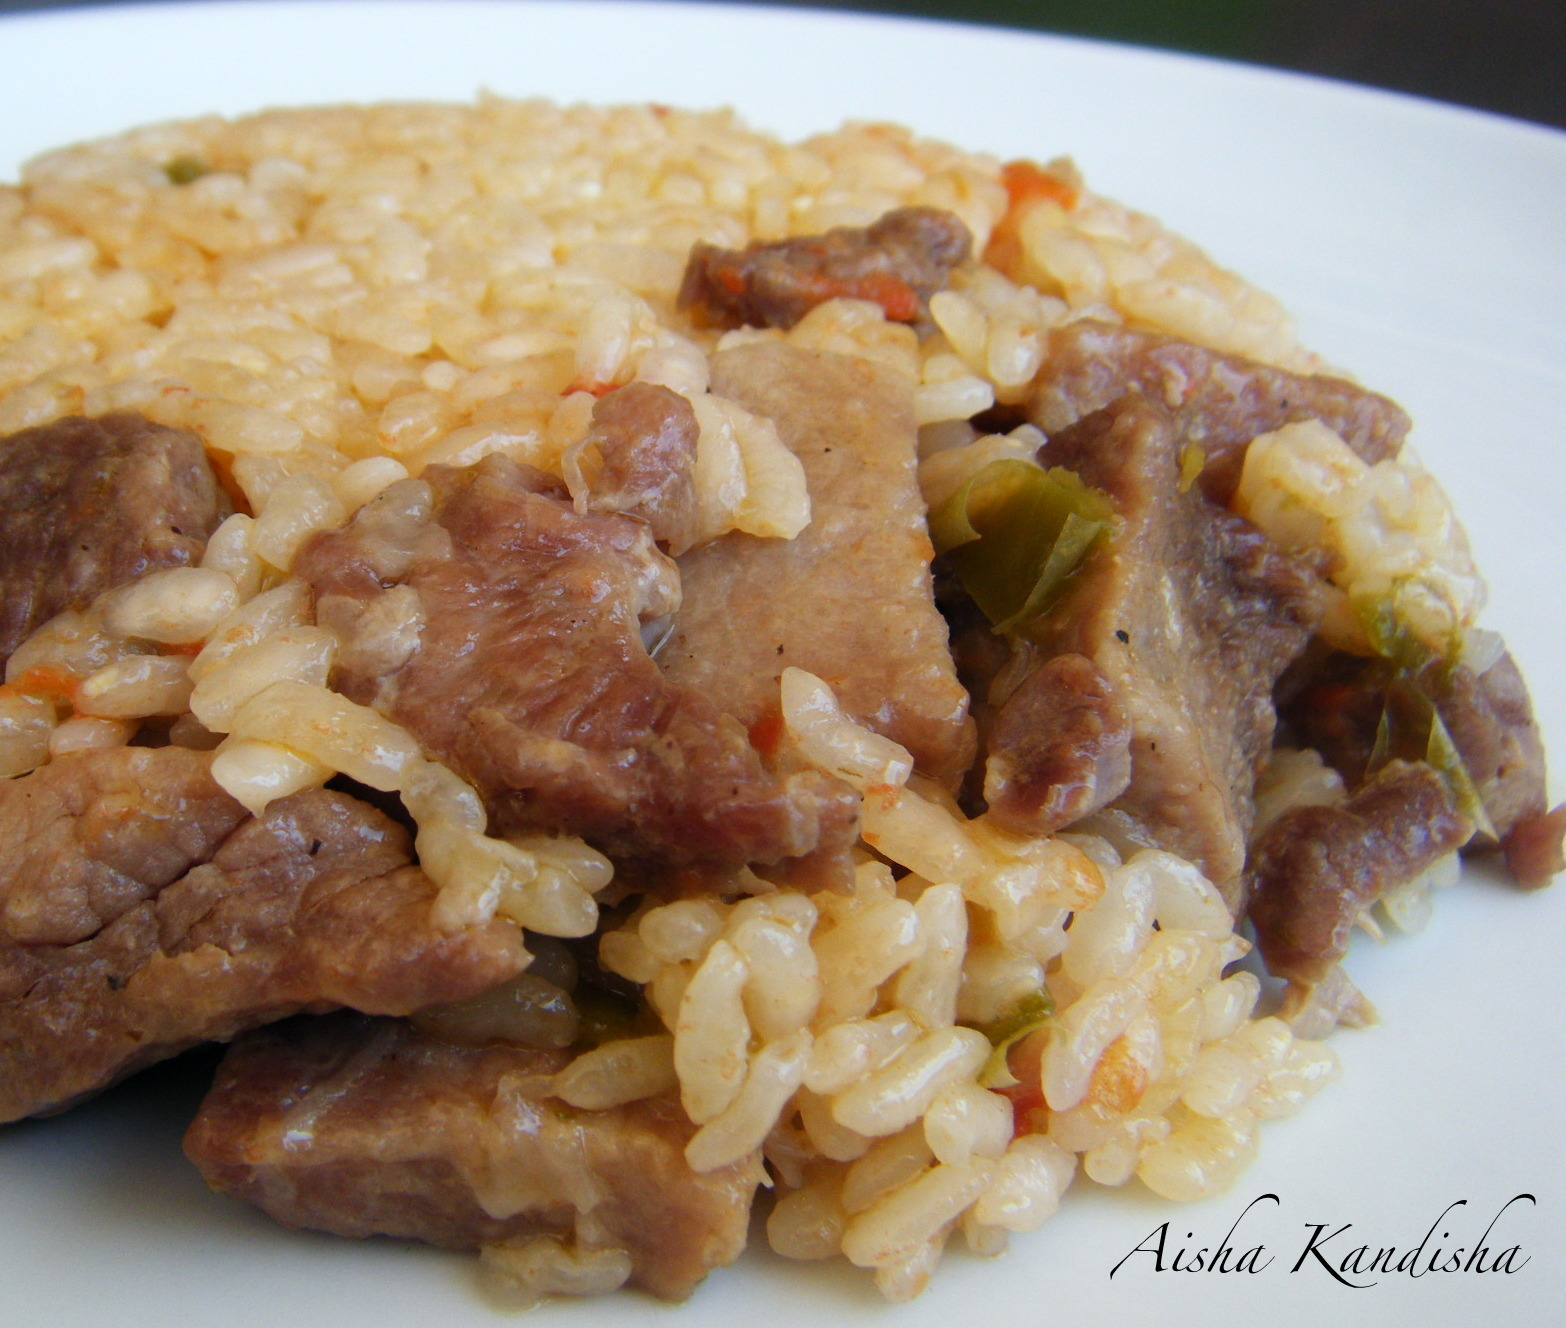 ARROZ AL WHISKY